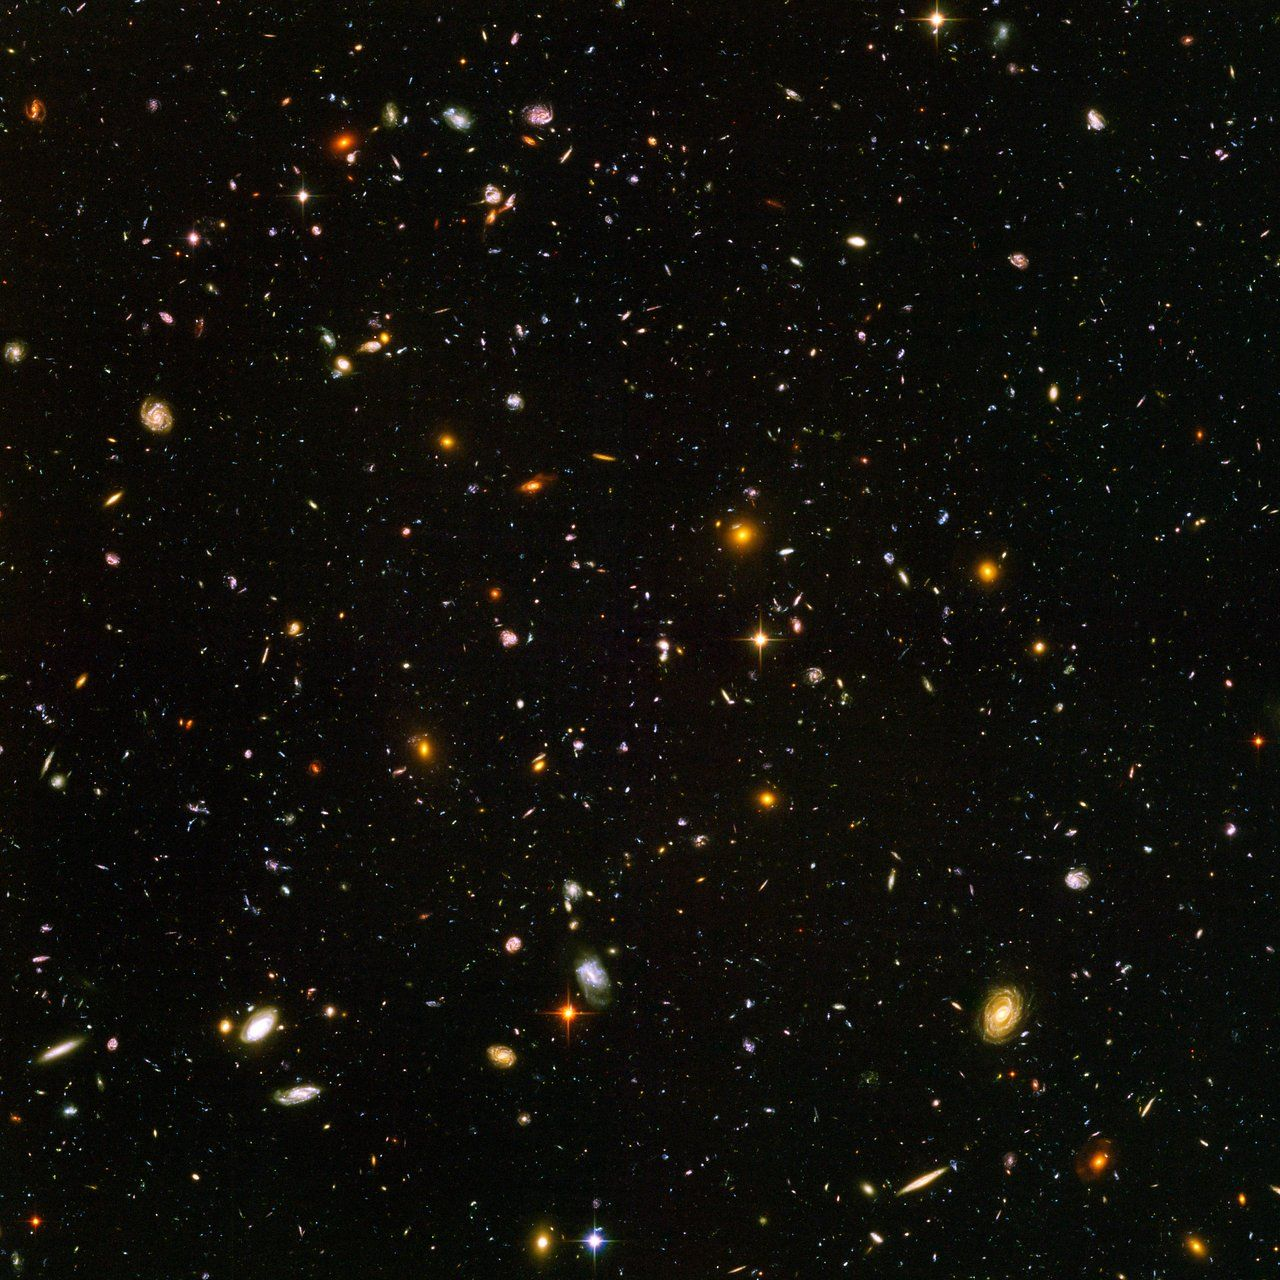 1280x1280 Hubble Ultra Deep Field | ESA/Hubble